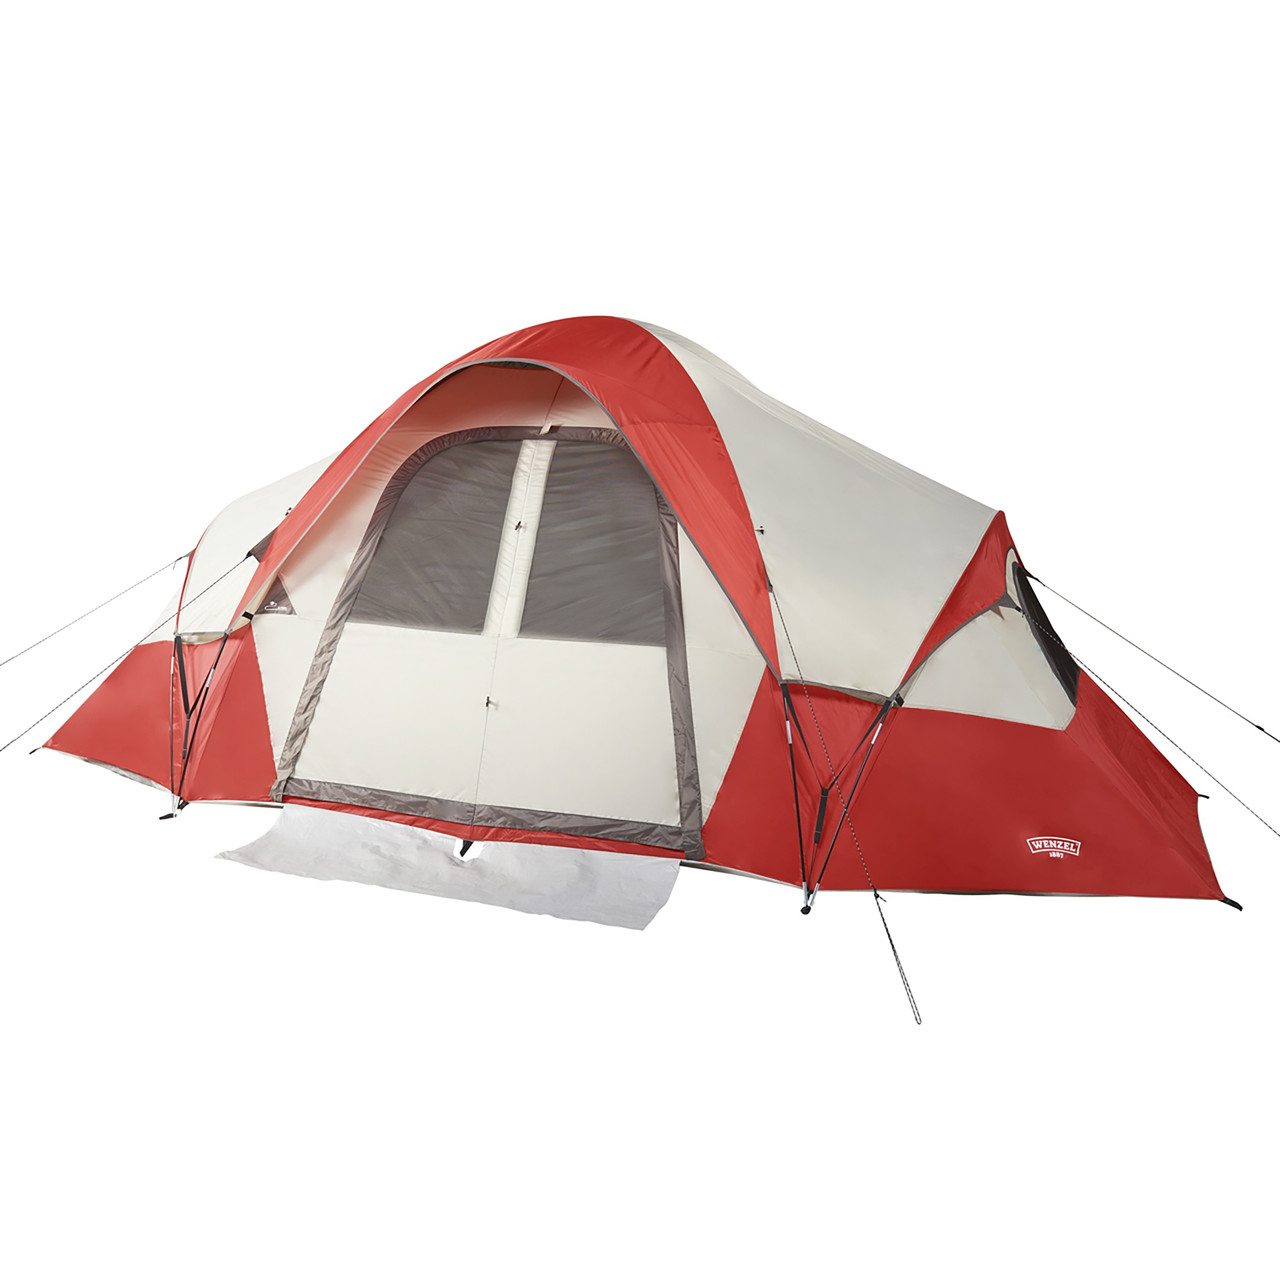 Wenzel Bristlecone 8 Person Dome Tent, red/white, shown with fly attached